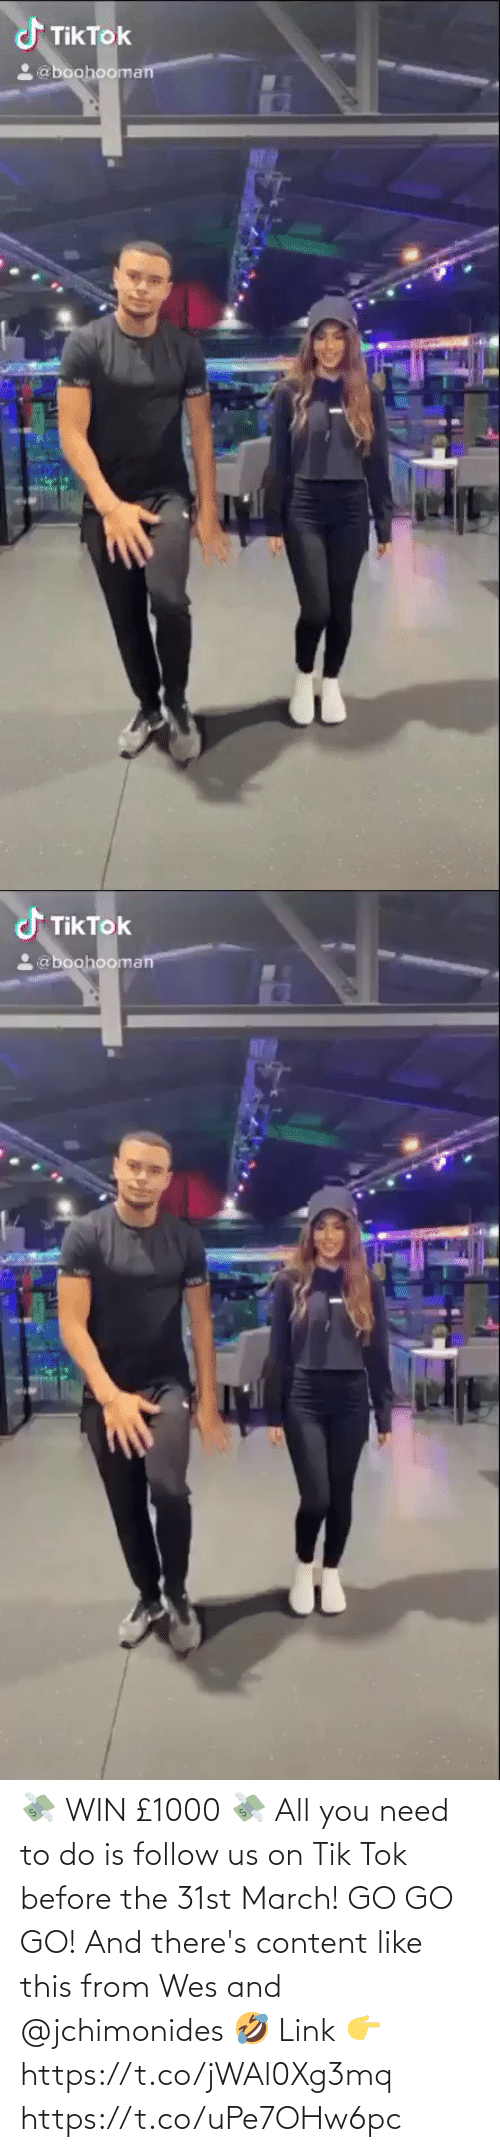 Wes: 💸 WIN £1000 💸  All you need to do is follow us on Tik Tok before the 31st March!   GO GO GO!  And there's content like this from Wes and @jchimonides🤣  Link 👉https://t.co/jWAl0Xg3mq https://t.co/uPe7OHw6pc